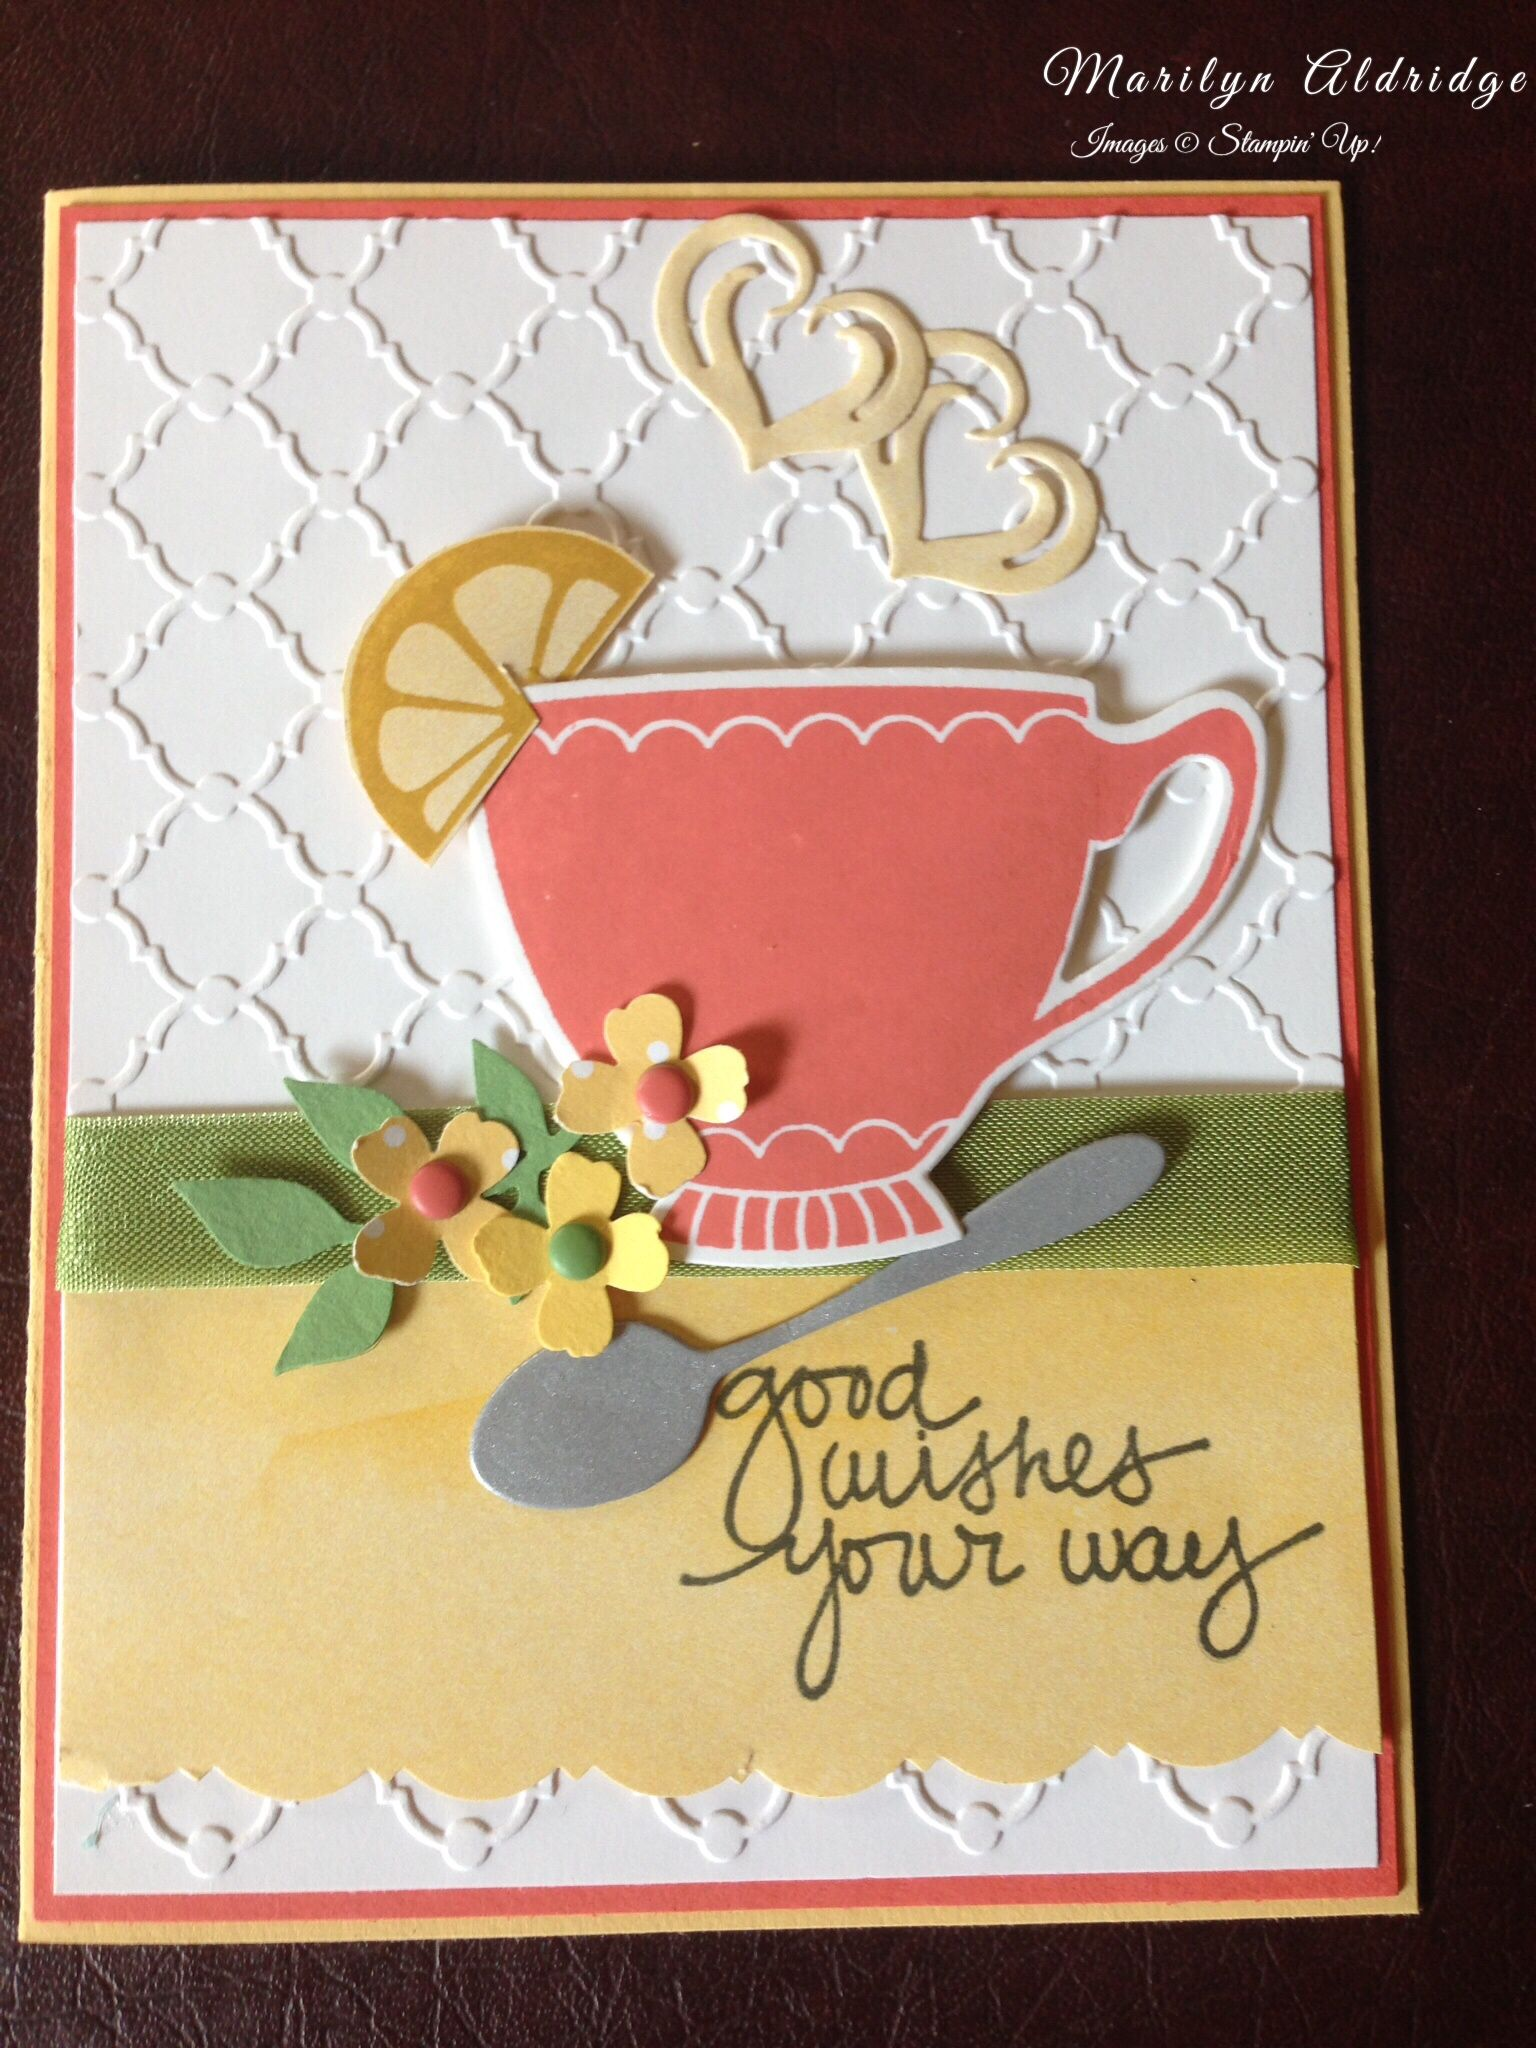 Pin von M Aldridge auf My Handmade Cards | Pinterest | Muttertag ...